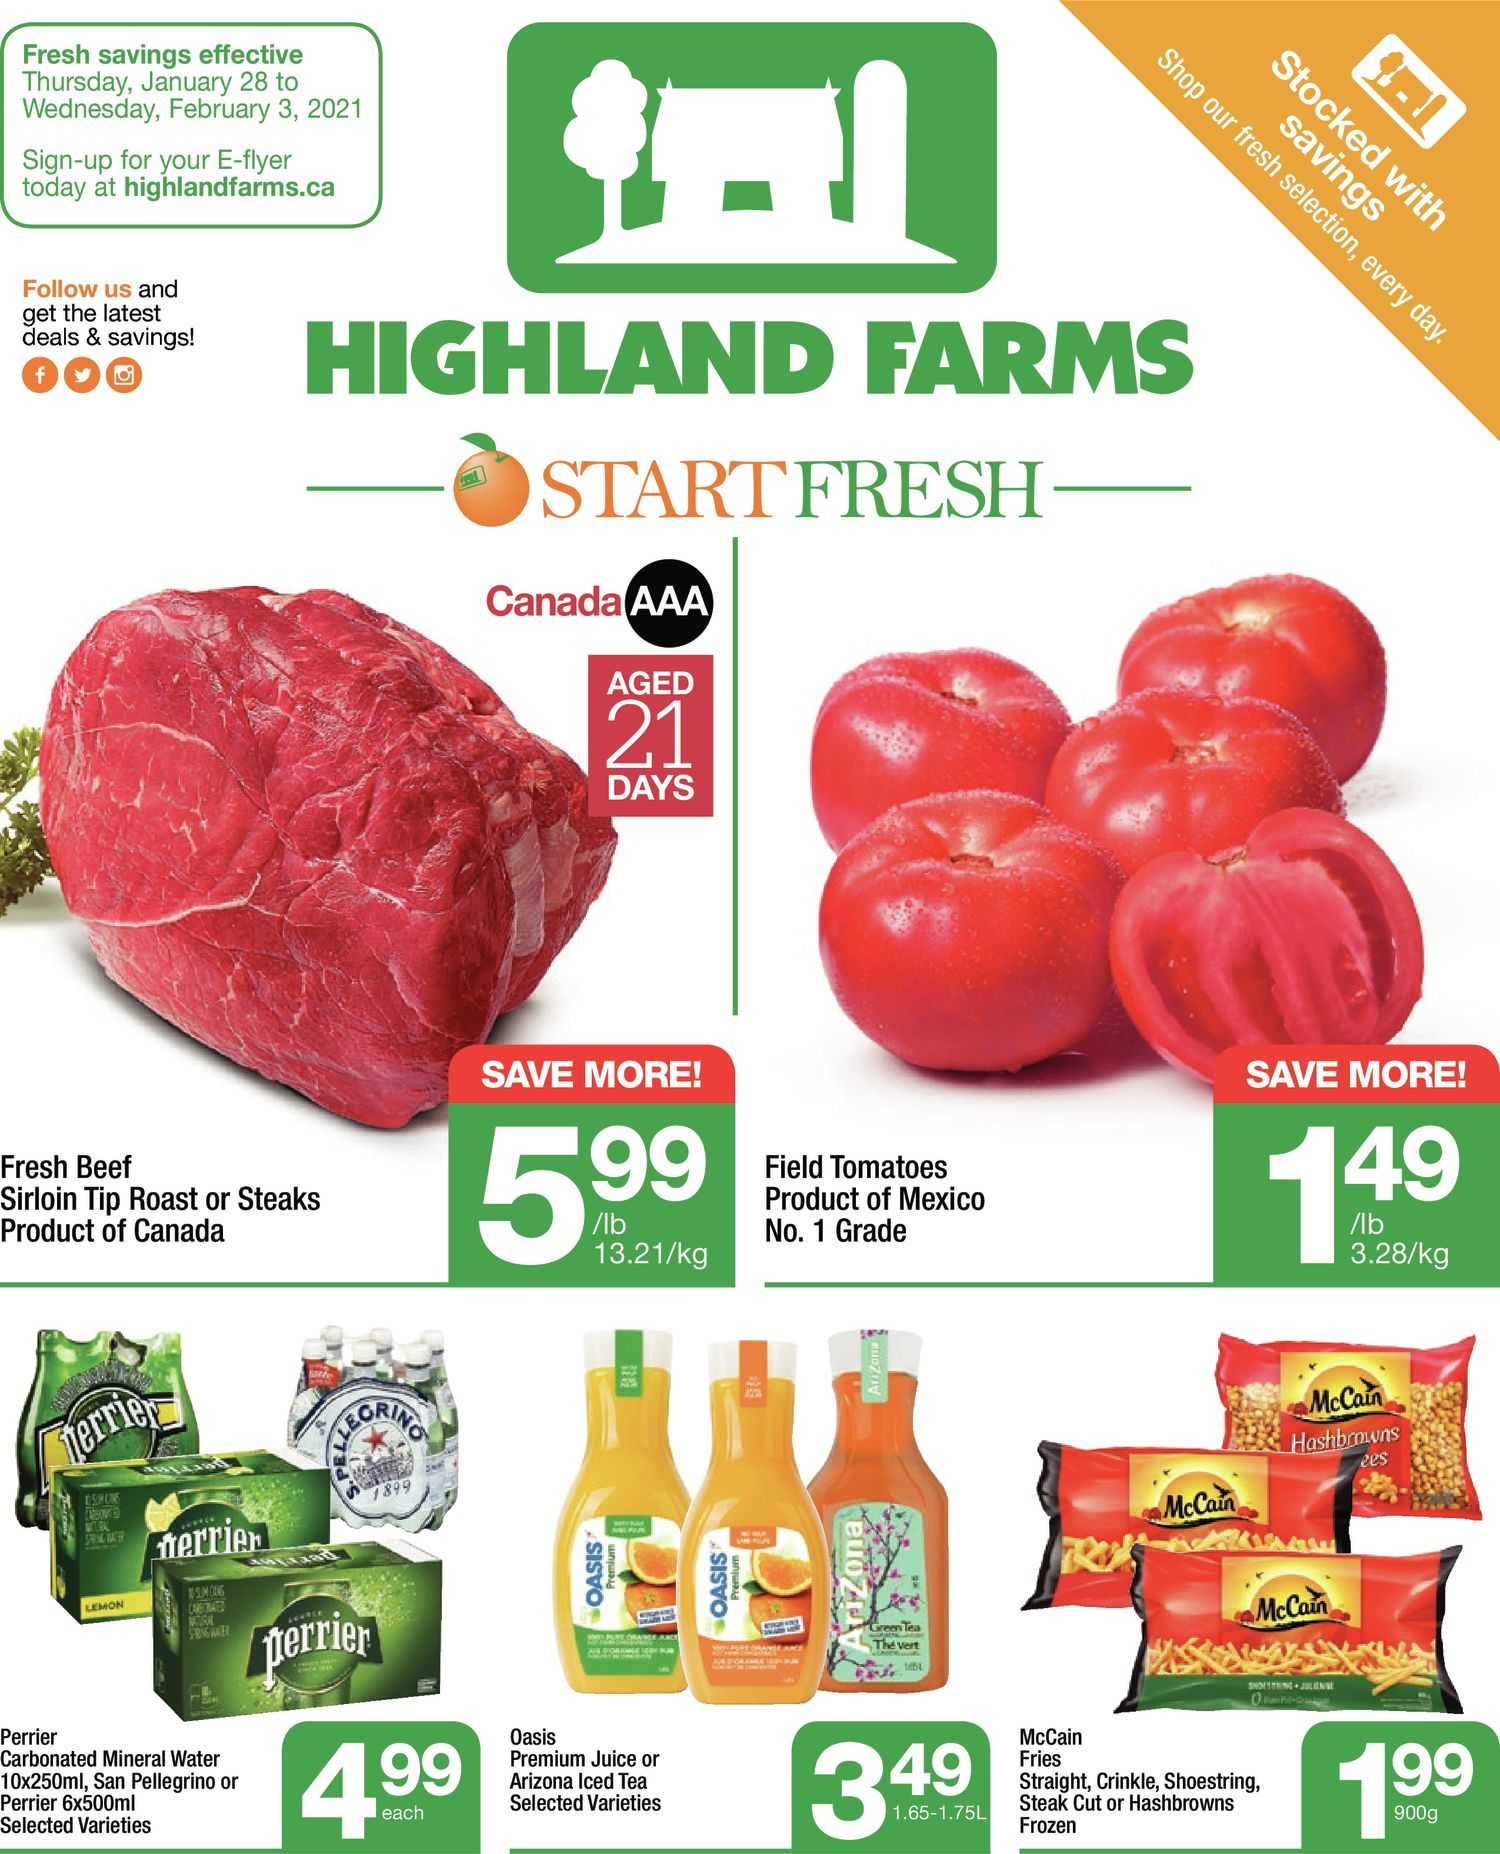 Highland Farms - Weekly Flyer Specials - Start Fresh